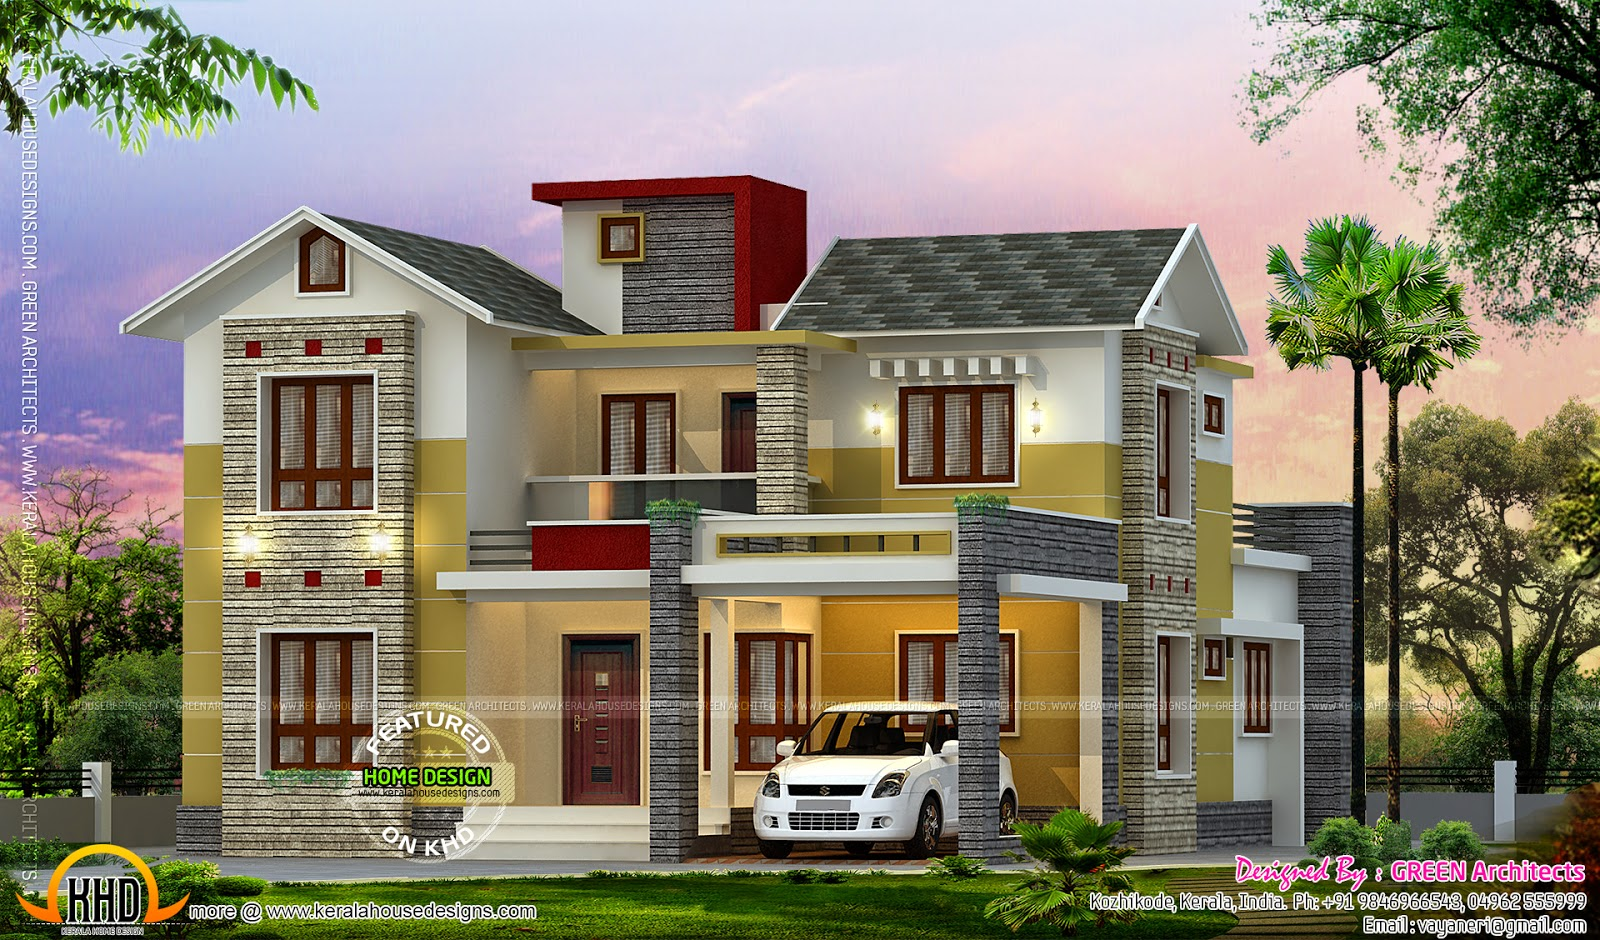 4 bedroom house kerala home design and floor plans for Parapet house plans